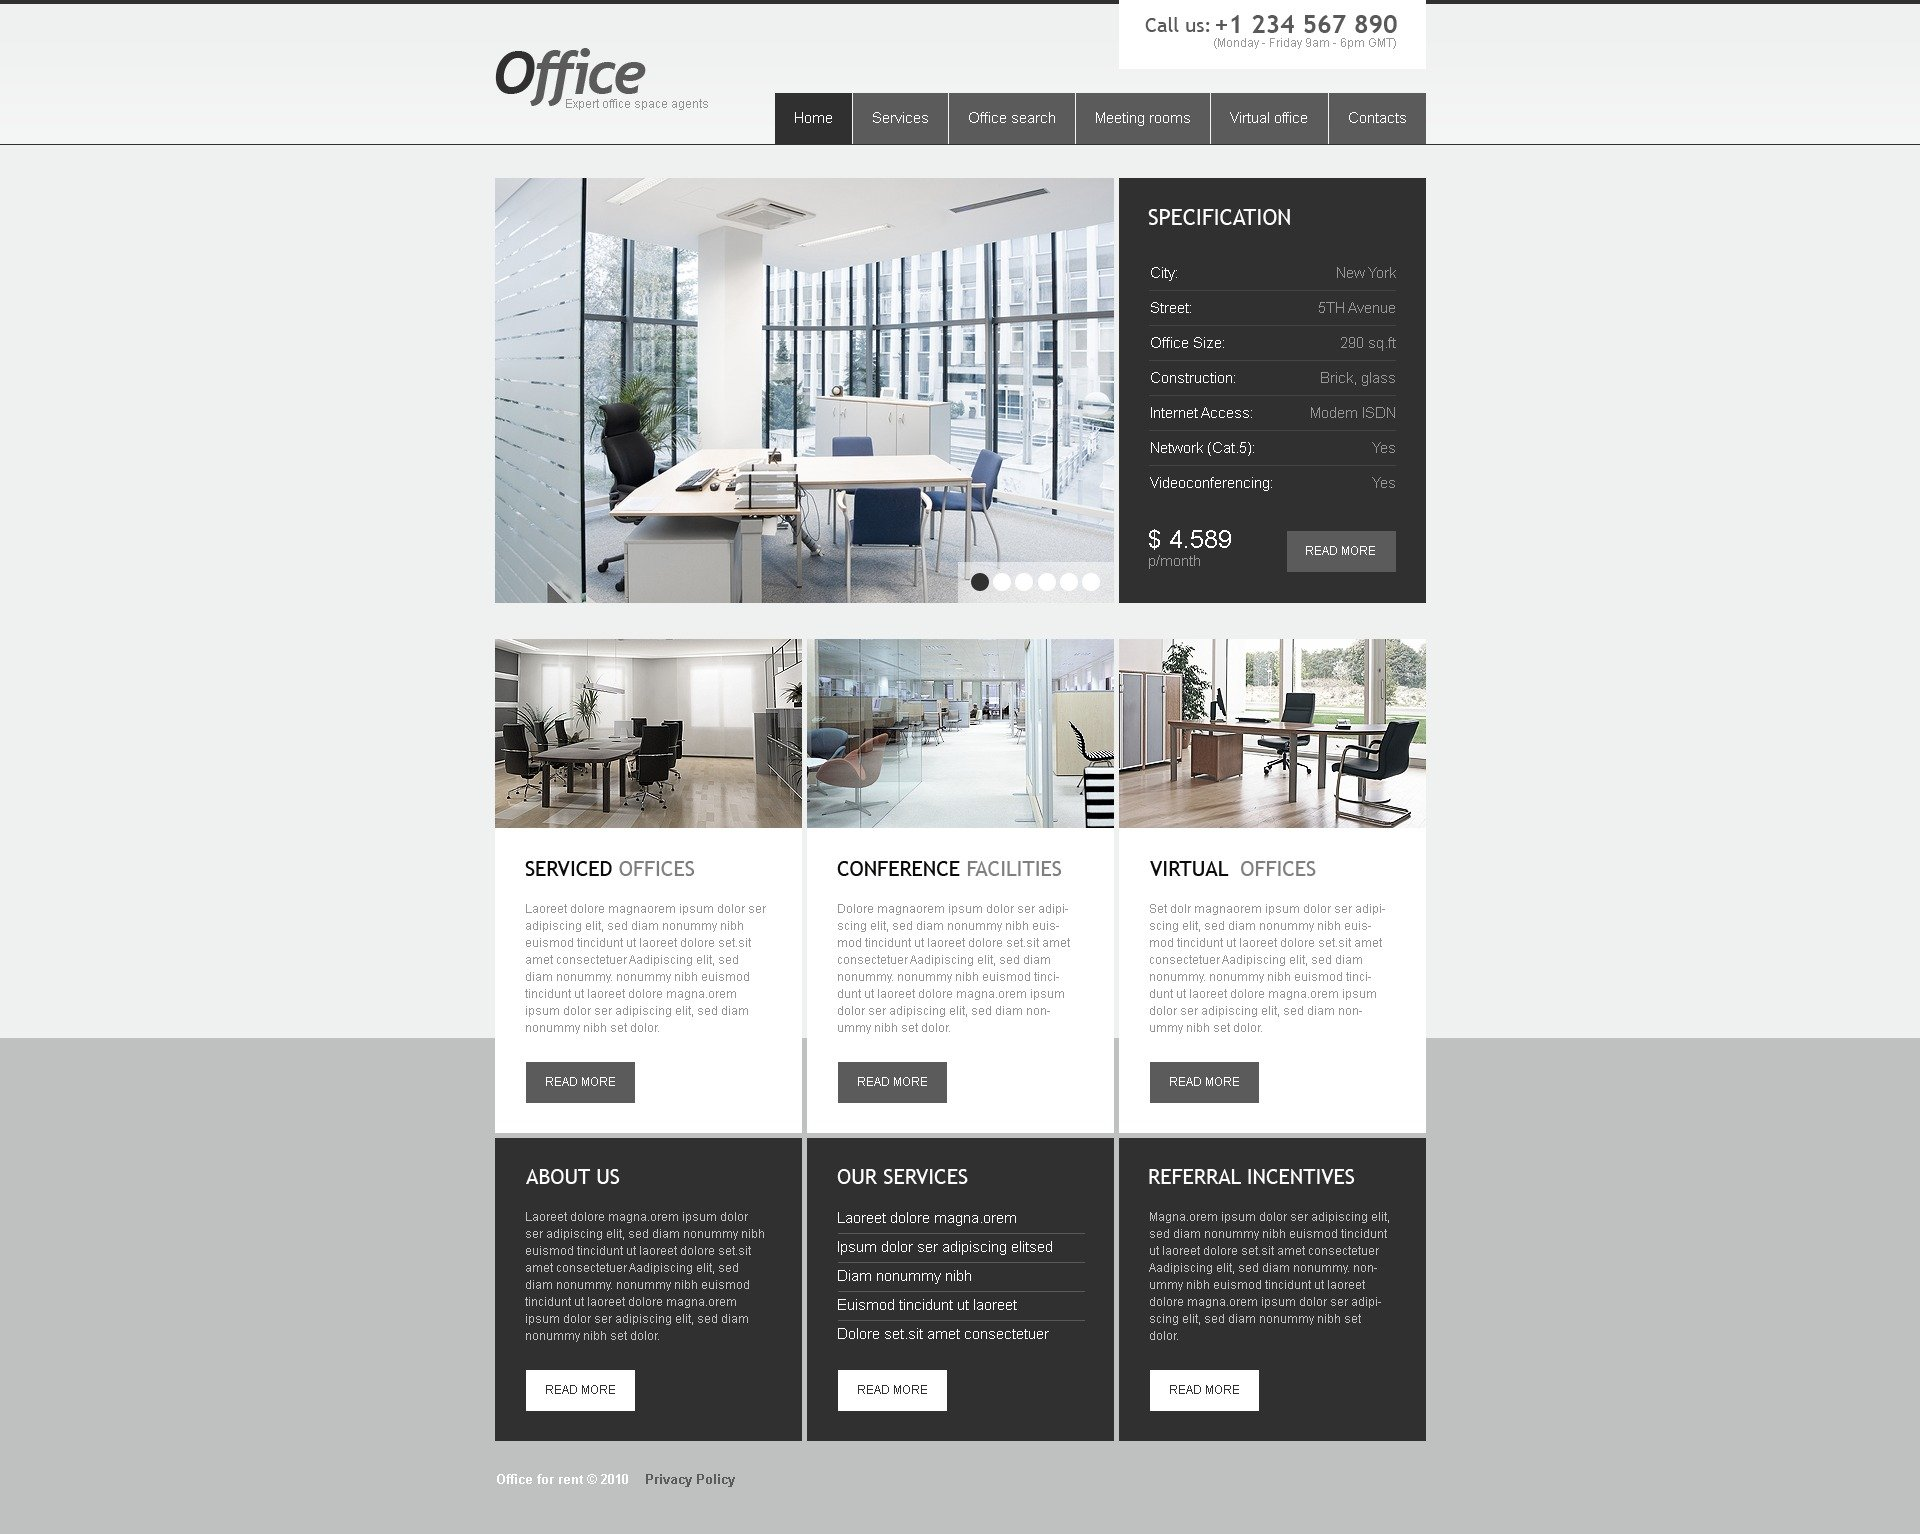 The Office For Rent PSD Design 54250, one of the best PSD templates of its kind (business, wide, jquery), also known as office for rent PSD template, room PSD template, space PSD template, meeting PSD template, business PSD template, virtual PSD template, serviced PSD template, conference and related with office for rent, room, space, meeting, business, virtual, serviced, conference, etc.